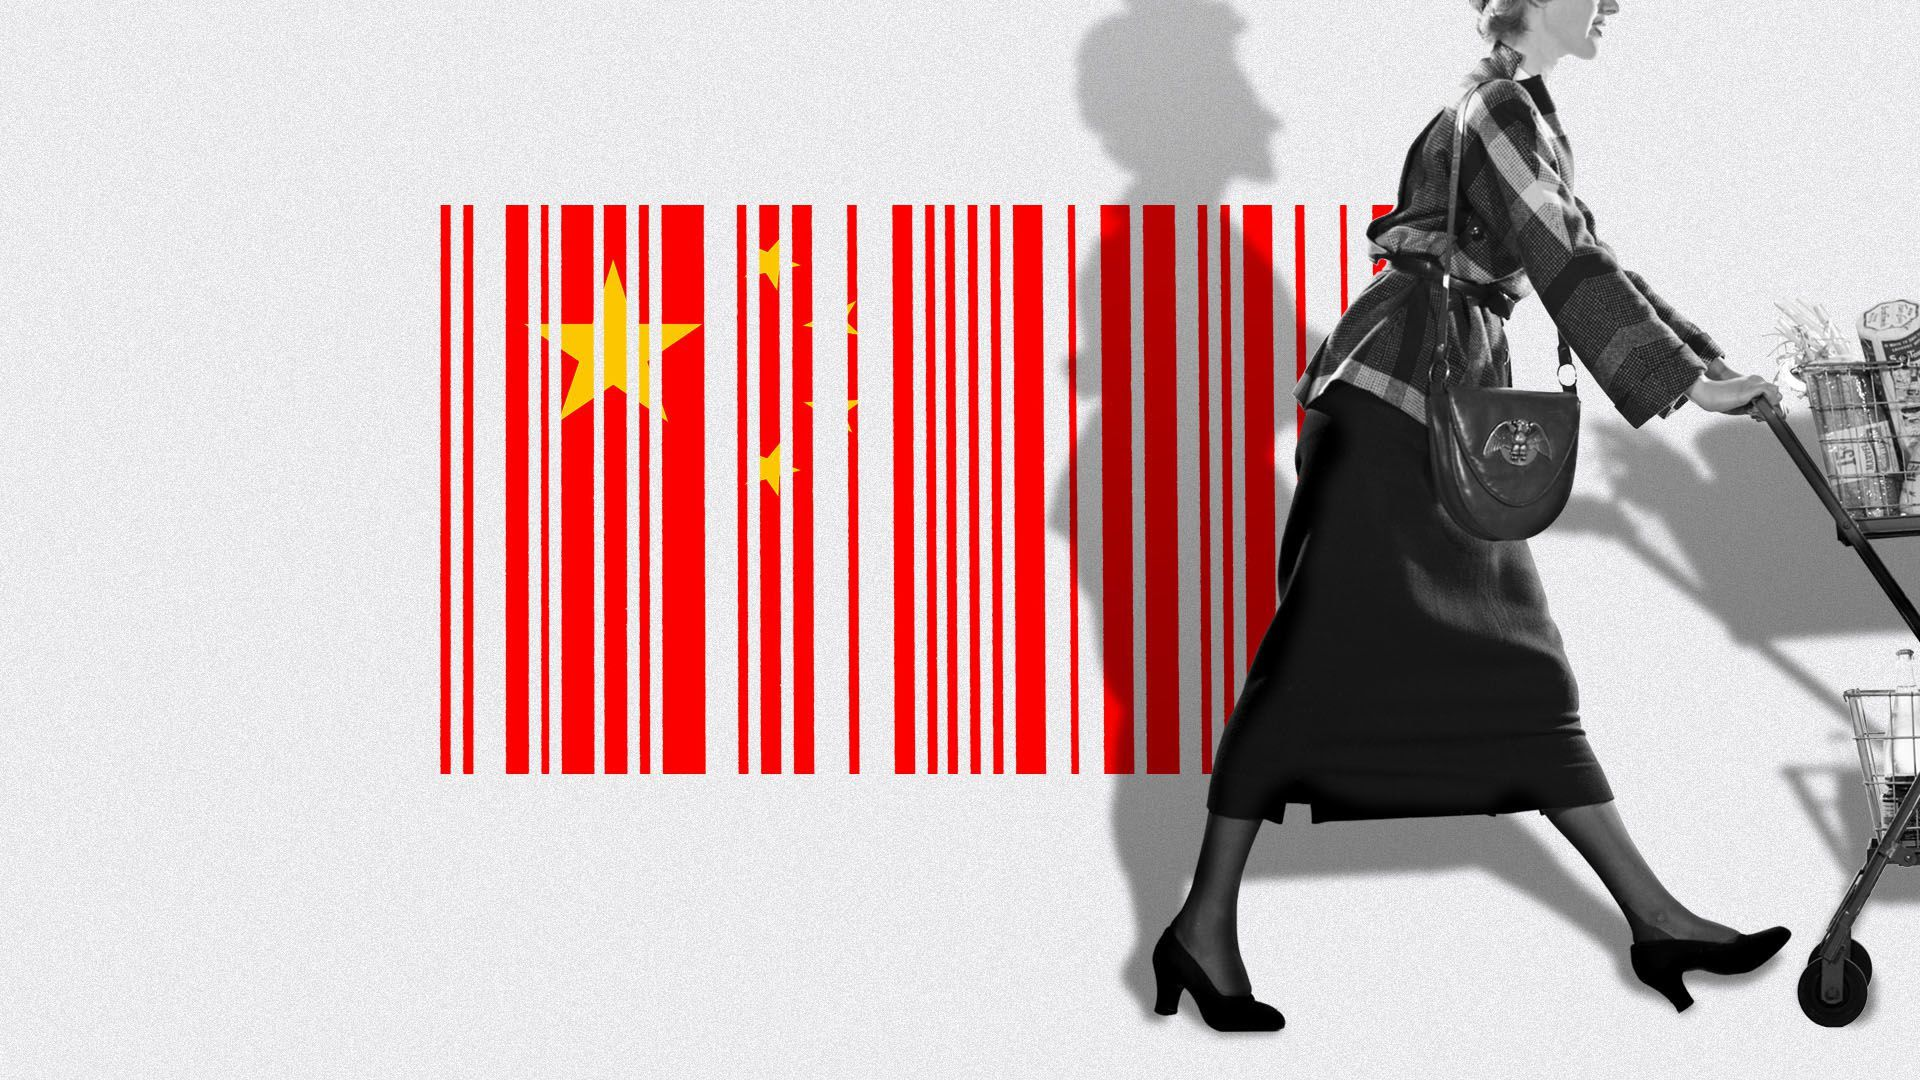 An illustration of a chinese flag that looks like a bar code.